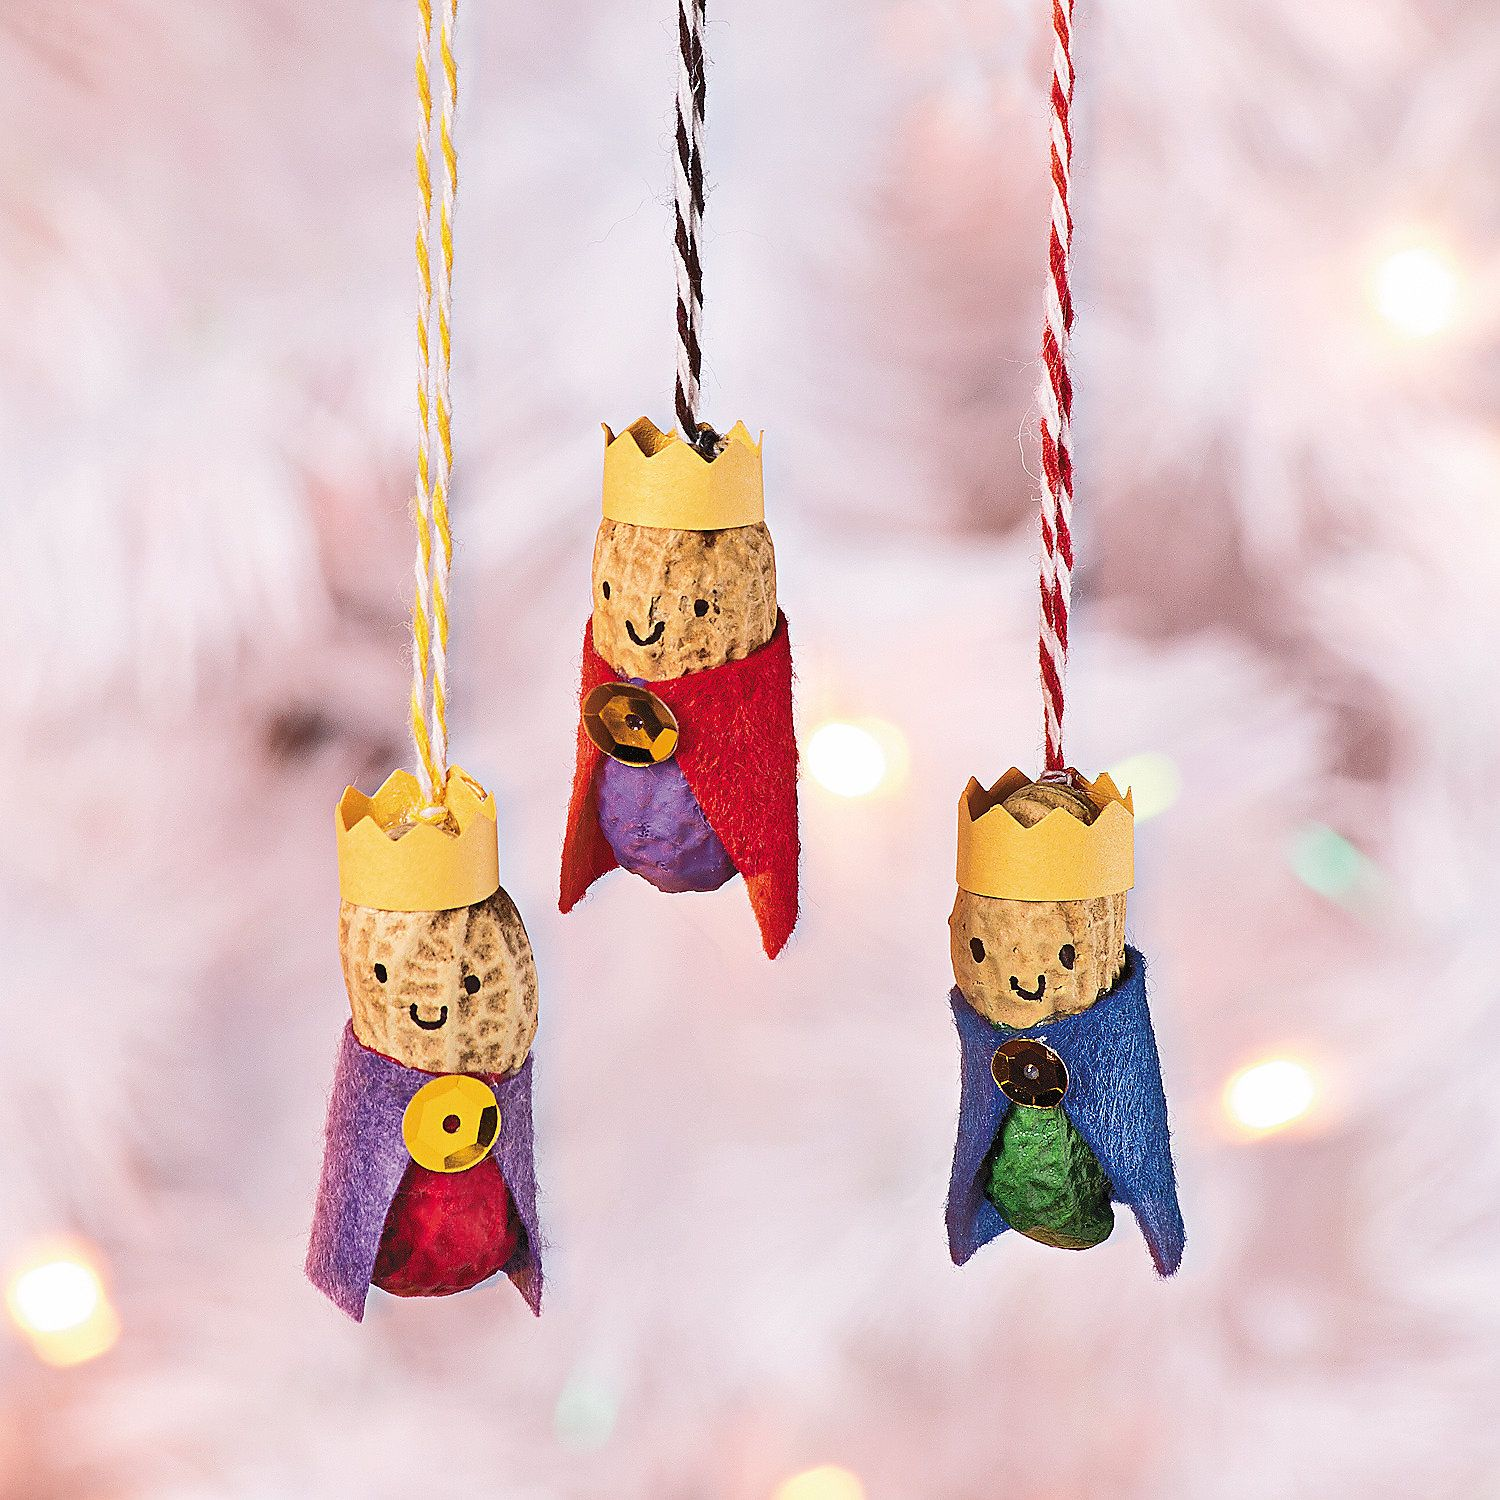 Peanut Wisemen Ornaments They May Think They Are Gettin Nuttin